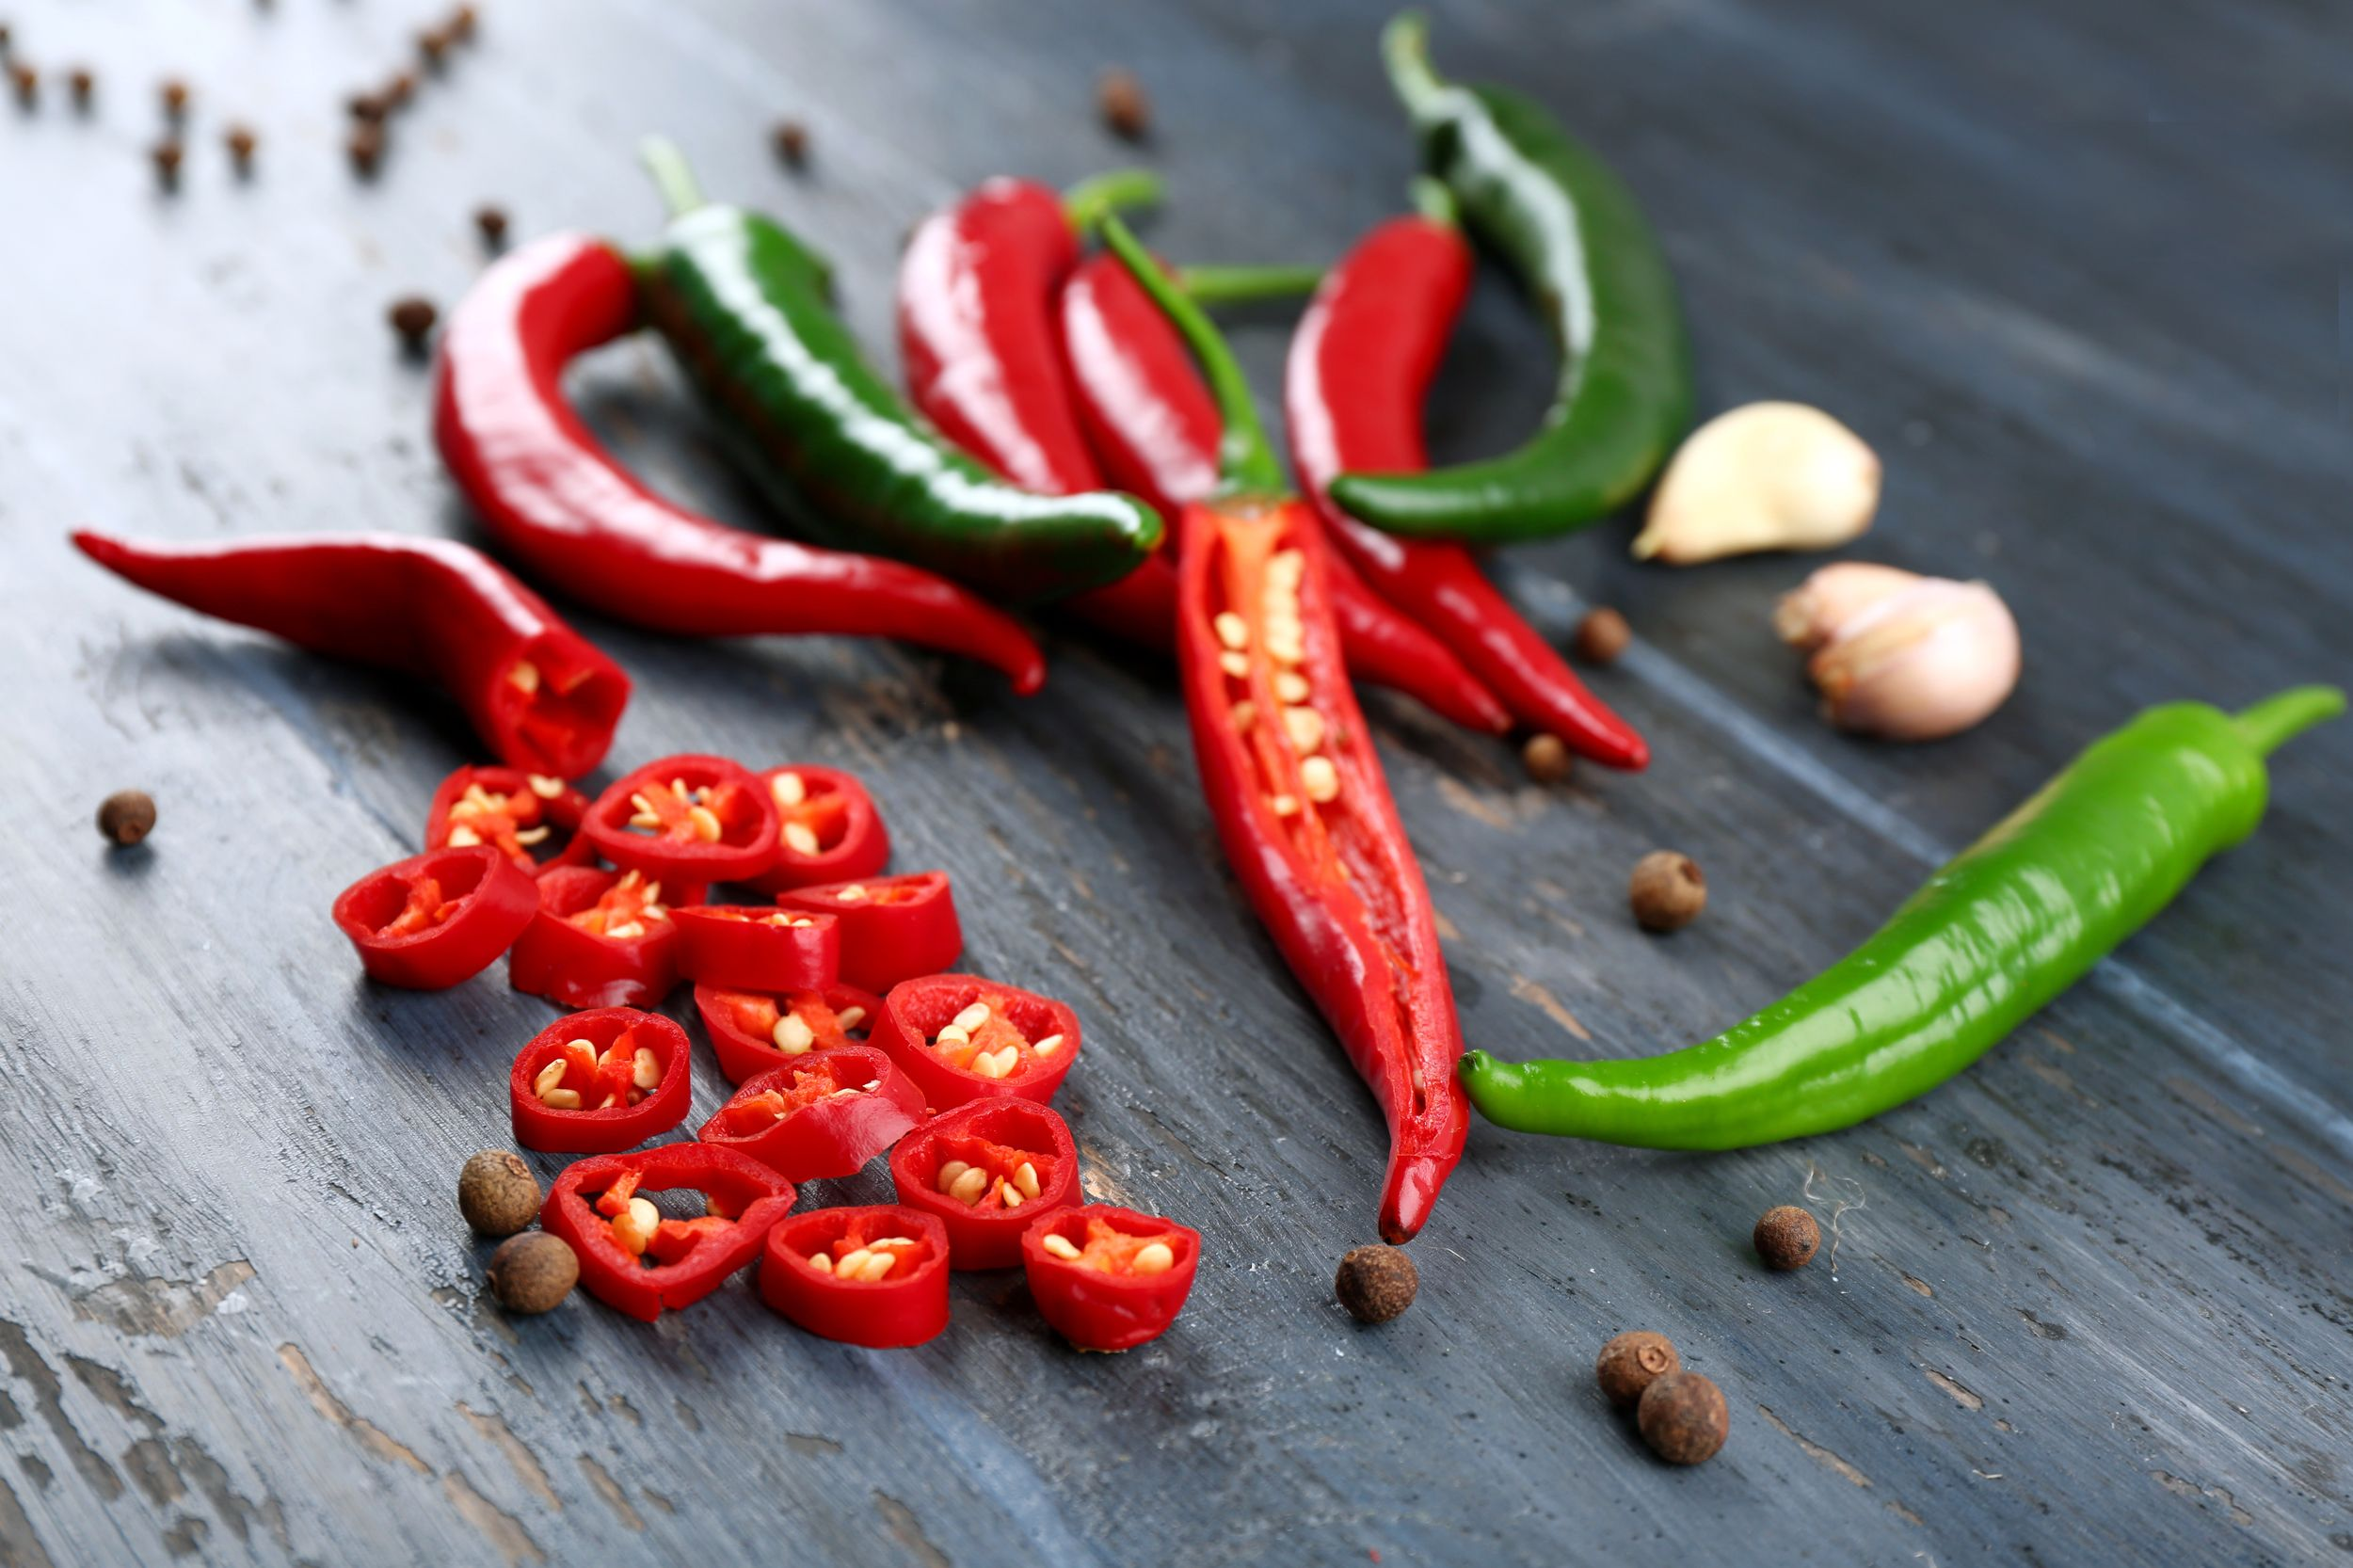 Spicy foods -- experts say spicy food can increase your heart rate, resulting in a metabolism boost. via @AOL_Lifestyle Read more:…